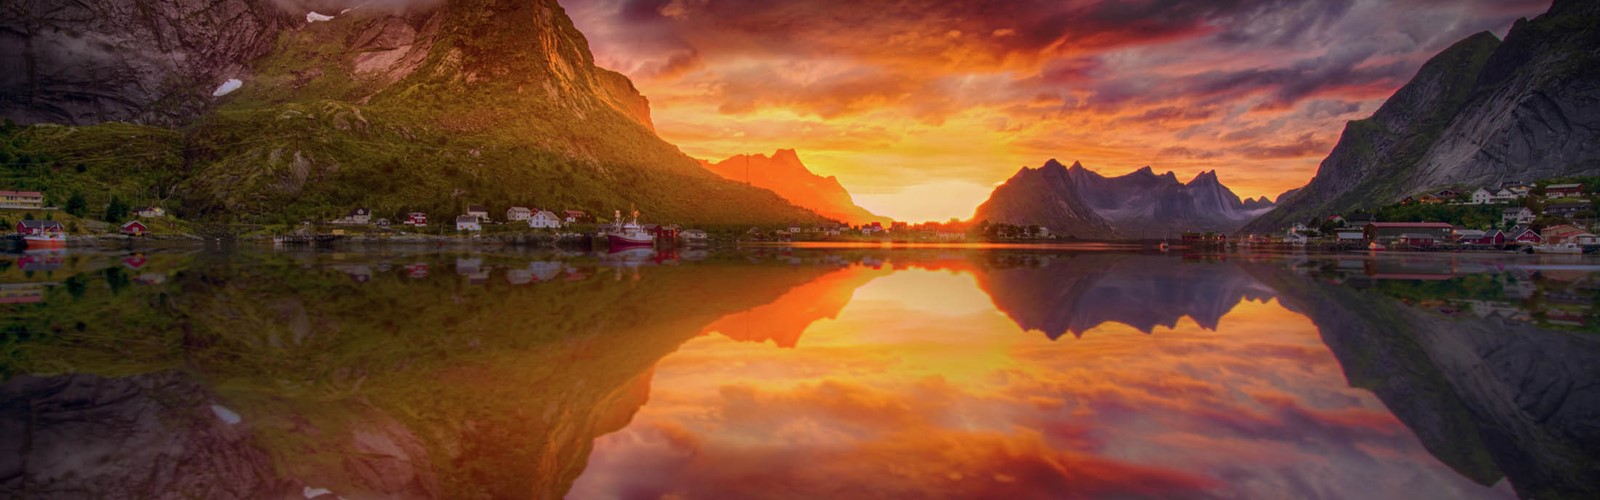 Midnight-sun-Lofoten-122015-99-0004_2200.jpg